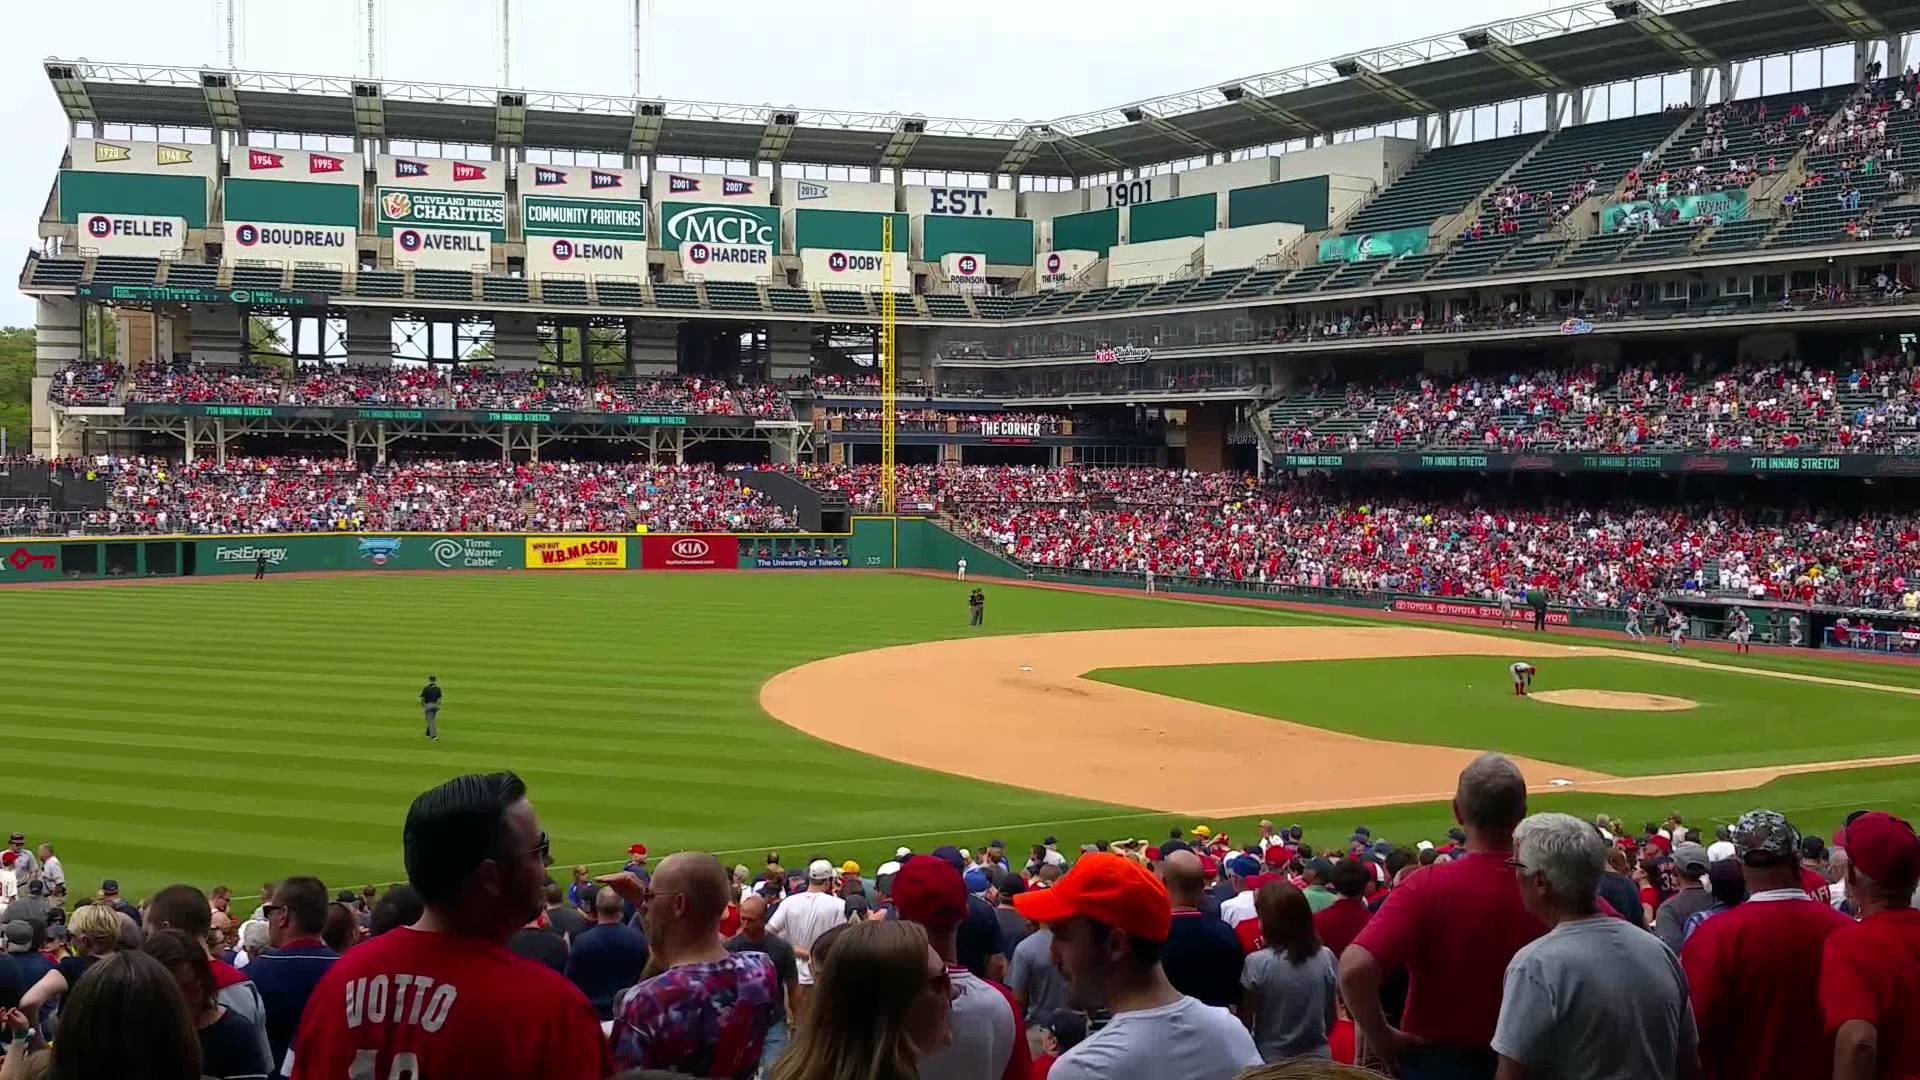 Take me out to the ballgame – Cleveland Indians 2015